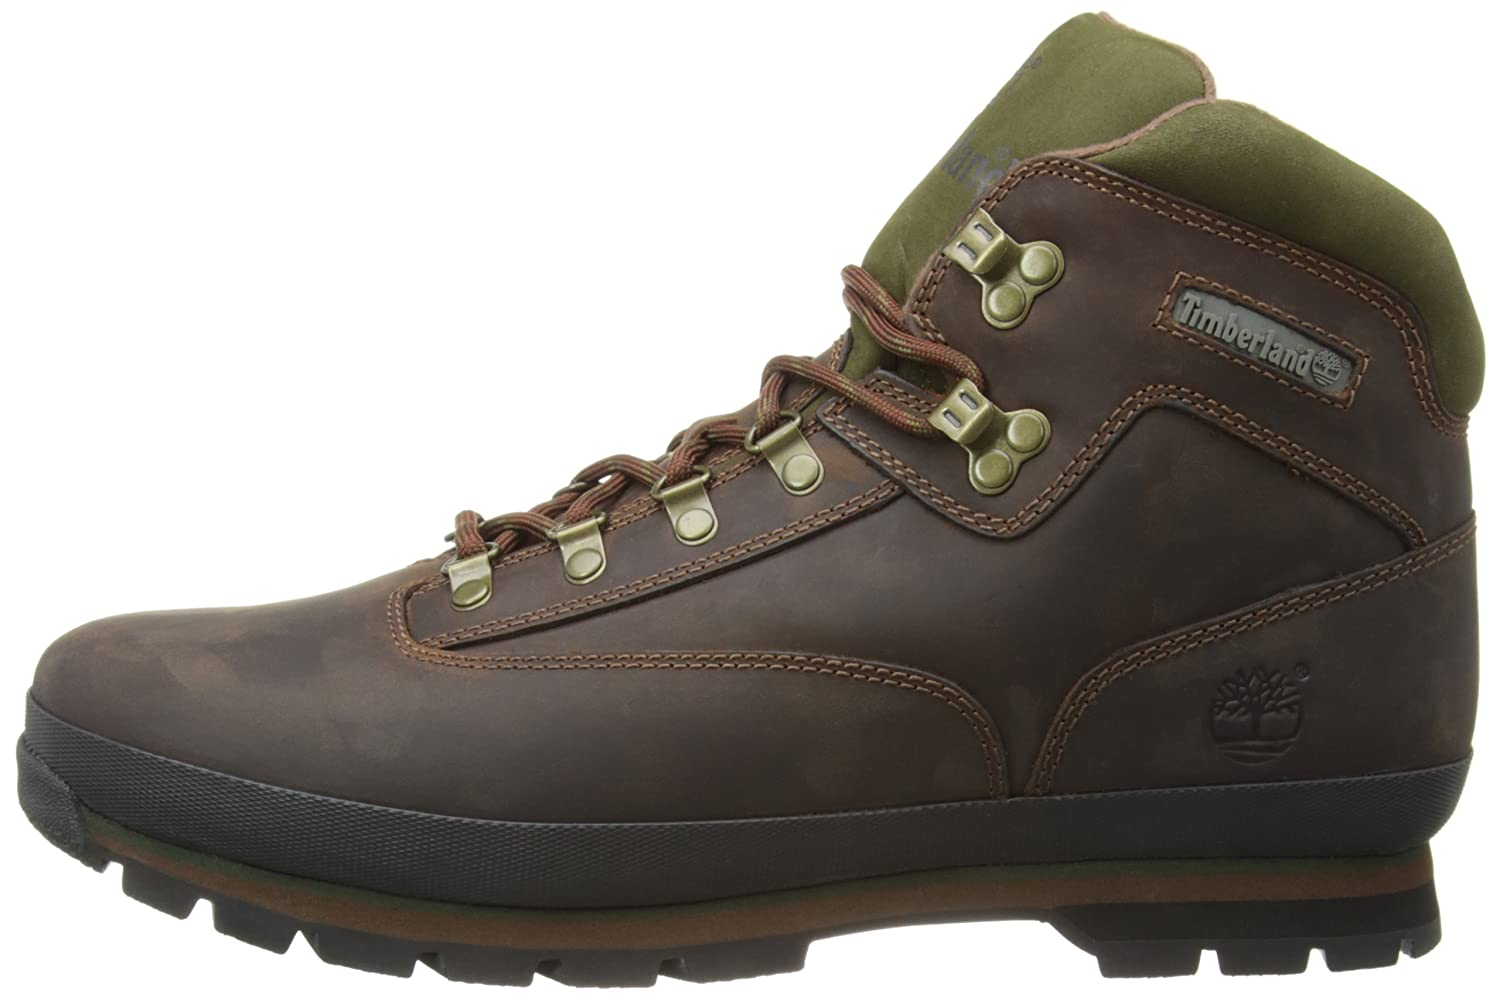 amazon timberland shoes euro hiker ftp 95100 t size 8 5 us